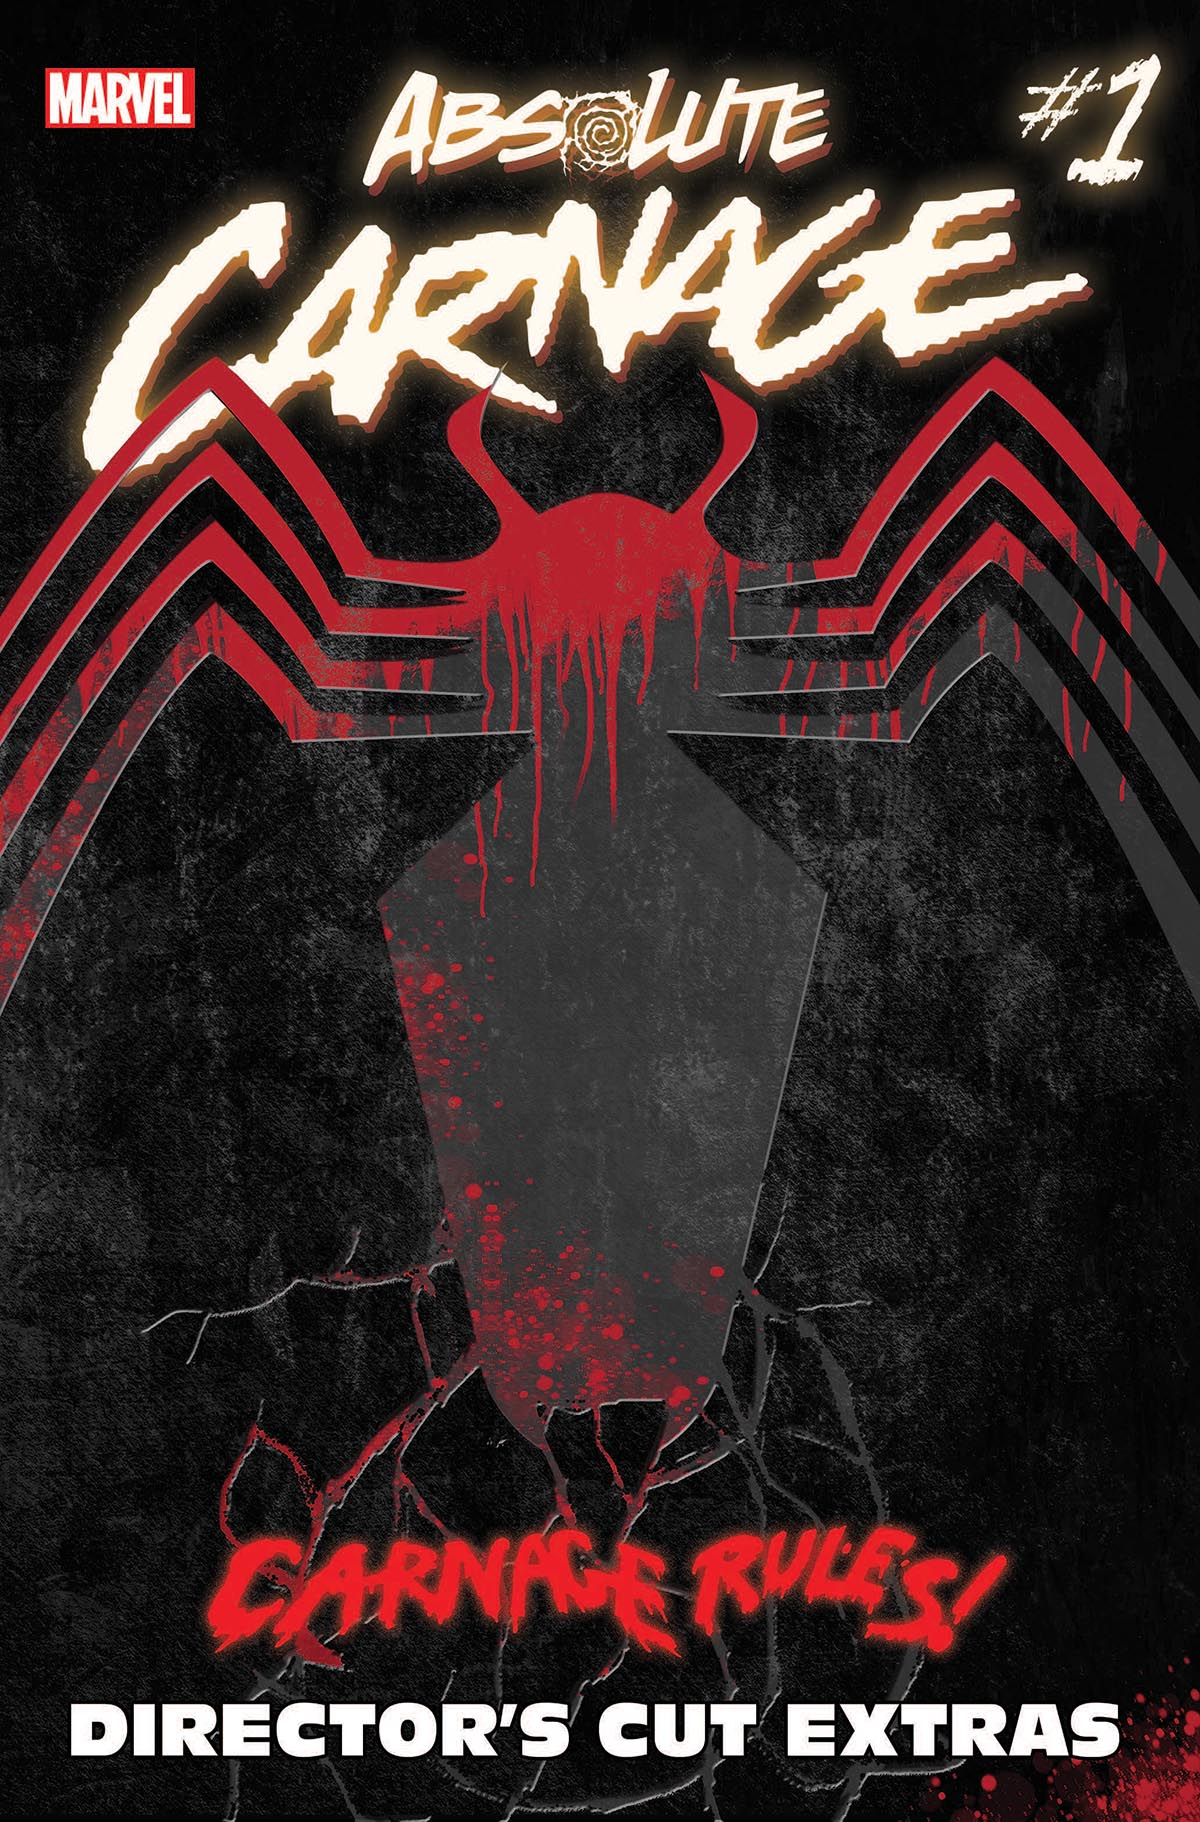 Absolute Carnage #1_Director's Cut Cover.jpeg